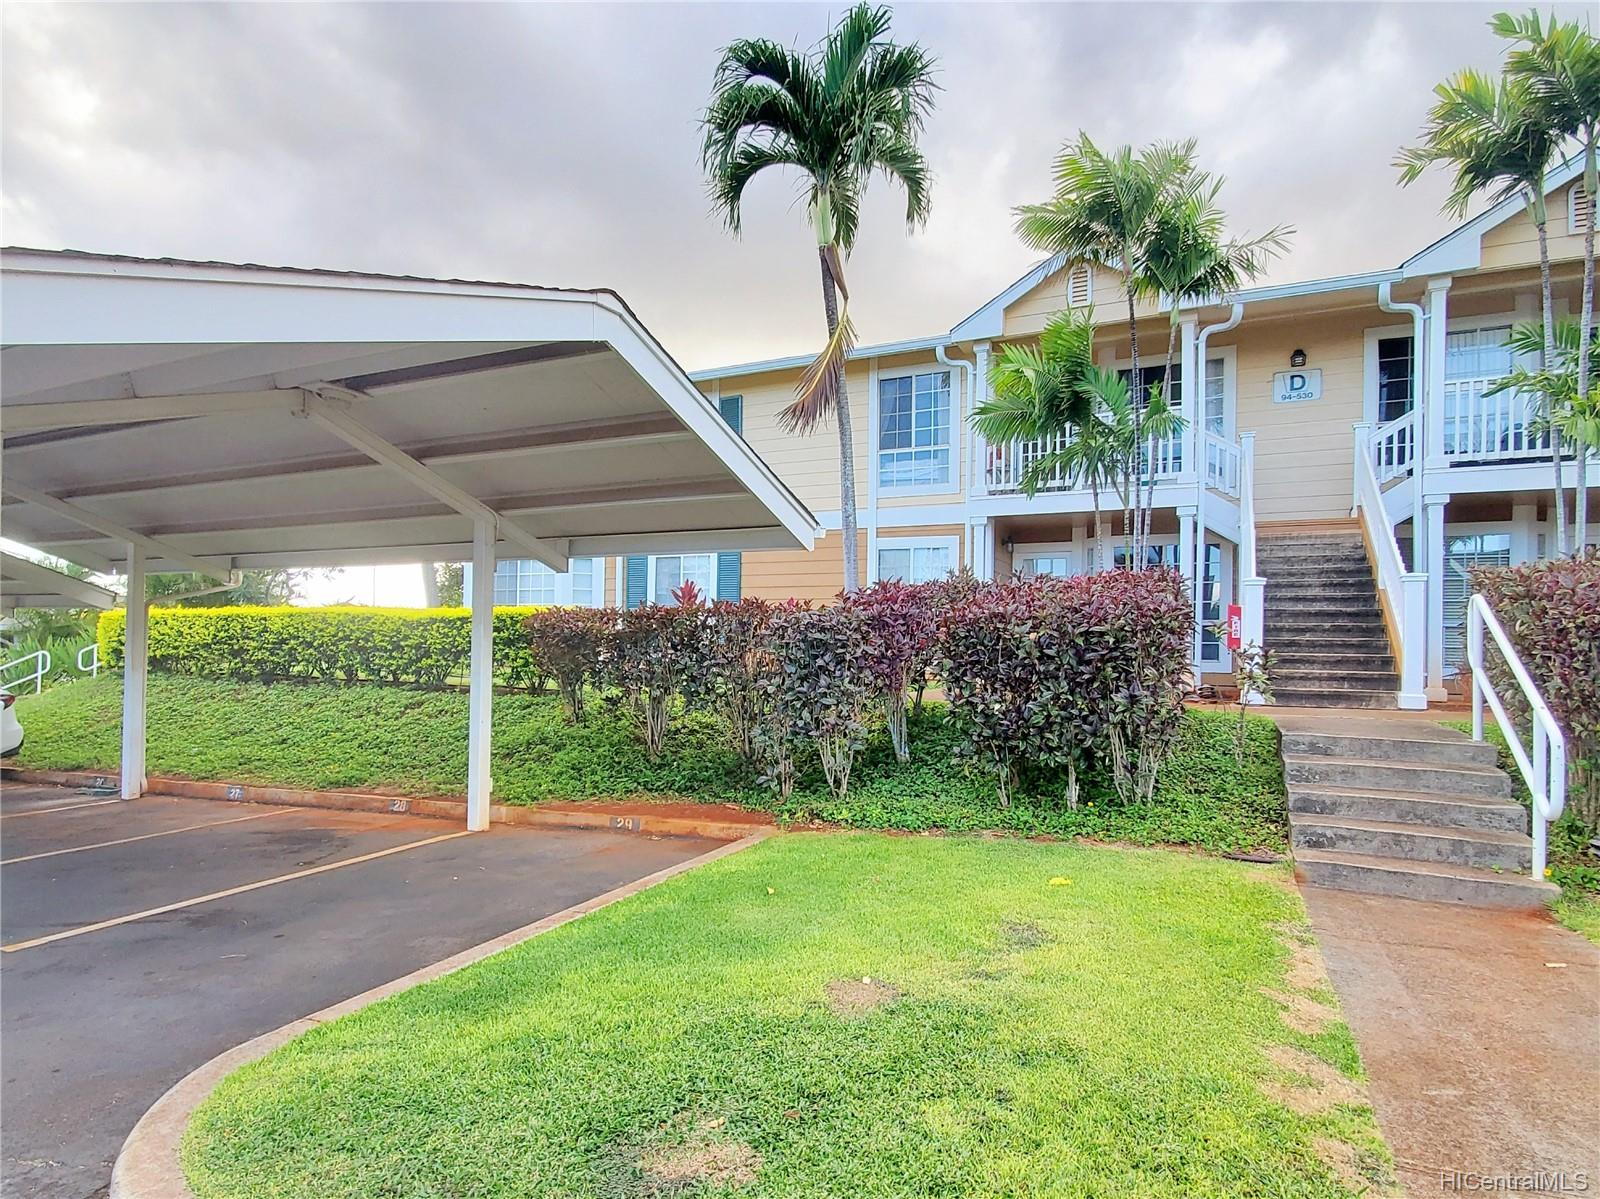 Highlands At Waikele condo # D202, Waipahu, Hawaii - photo 23 of 24